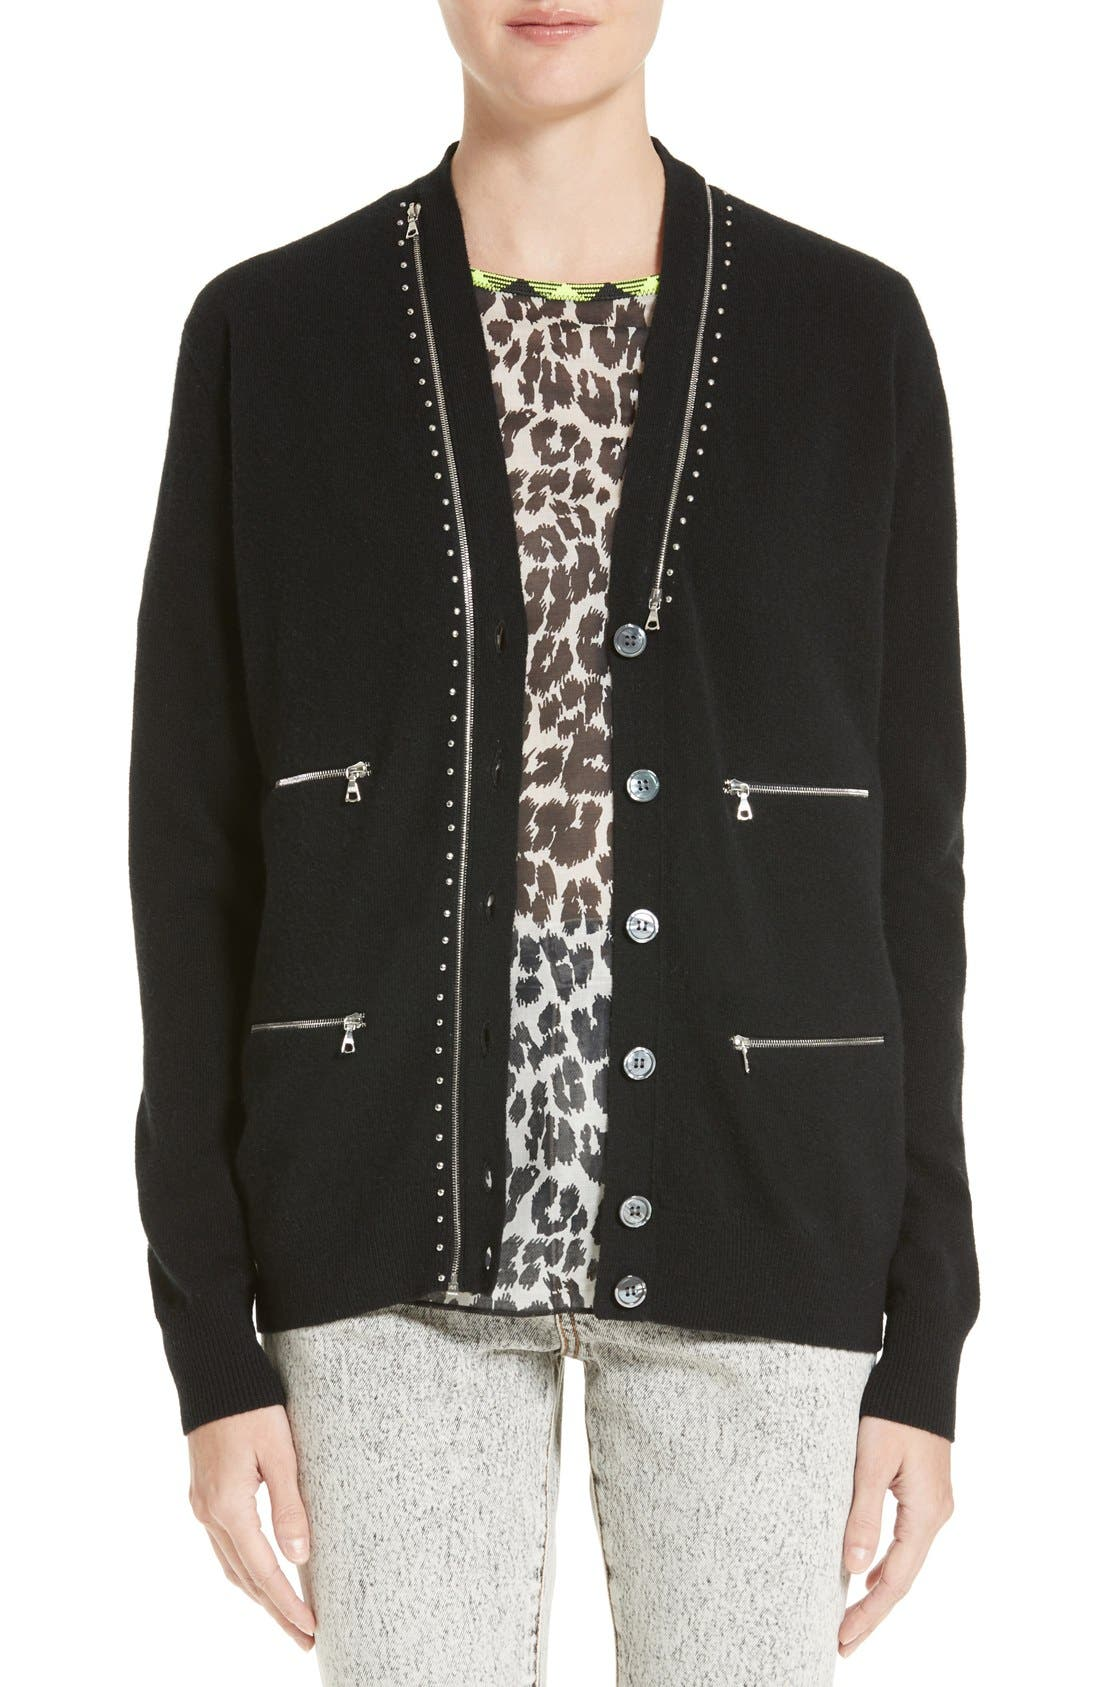 Alternate Image 1 Selected - MARC JACOBS Zip Detail Wool Cardigan